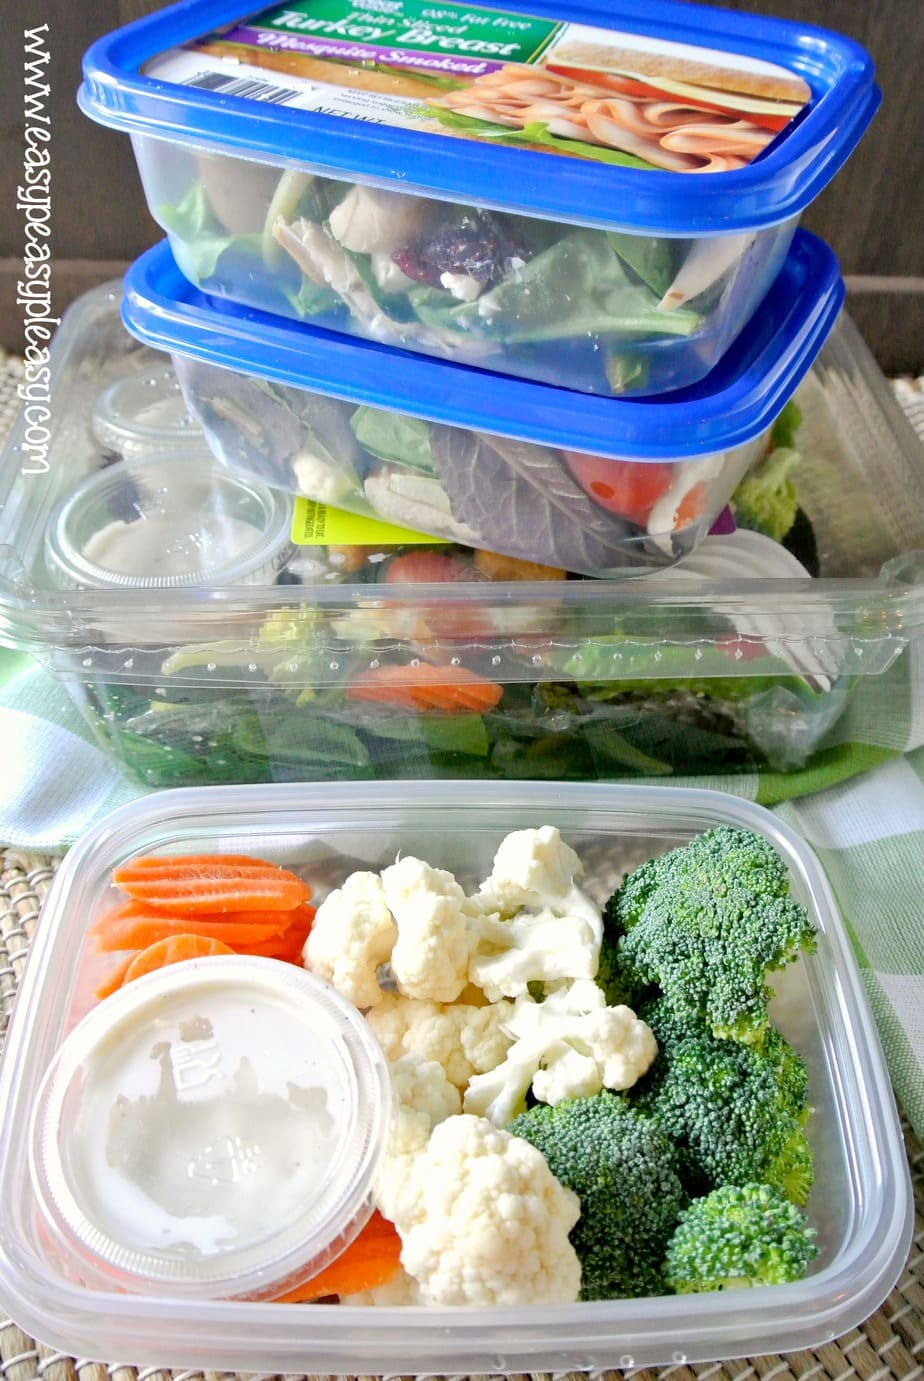 Make food on the go healthy, easy, and with no cleanup. Perfect addition to the cooler for picnics, the beach, the boat, the ballpark, and camping.